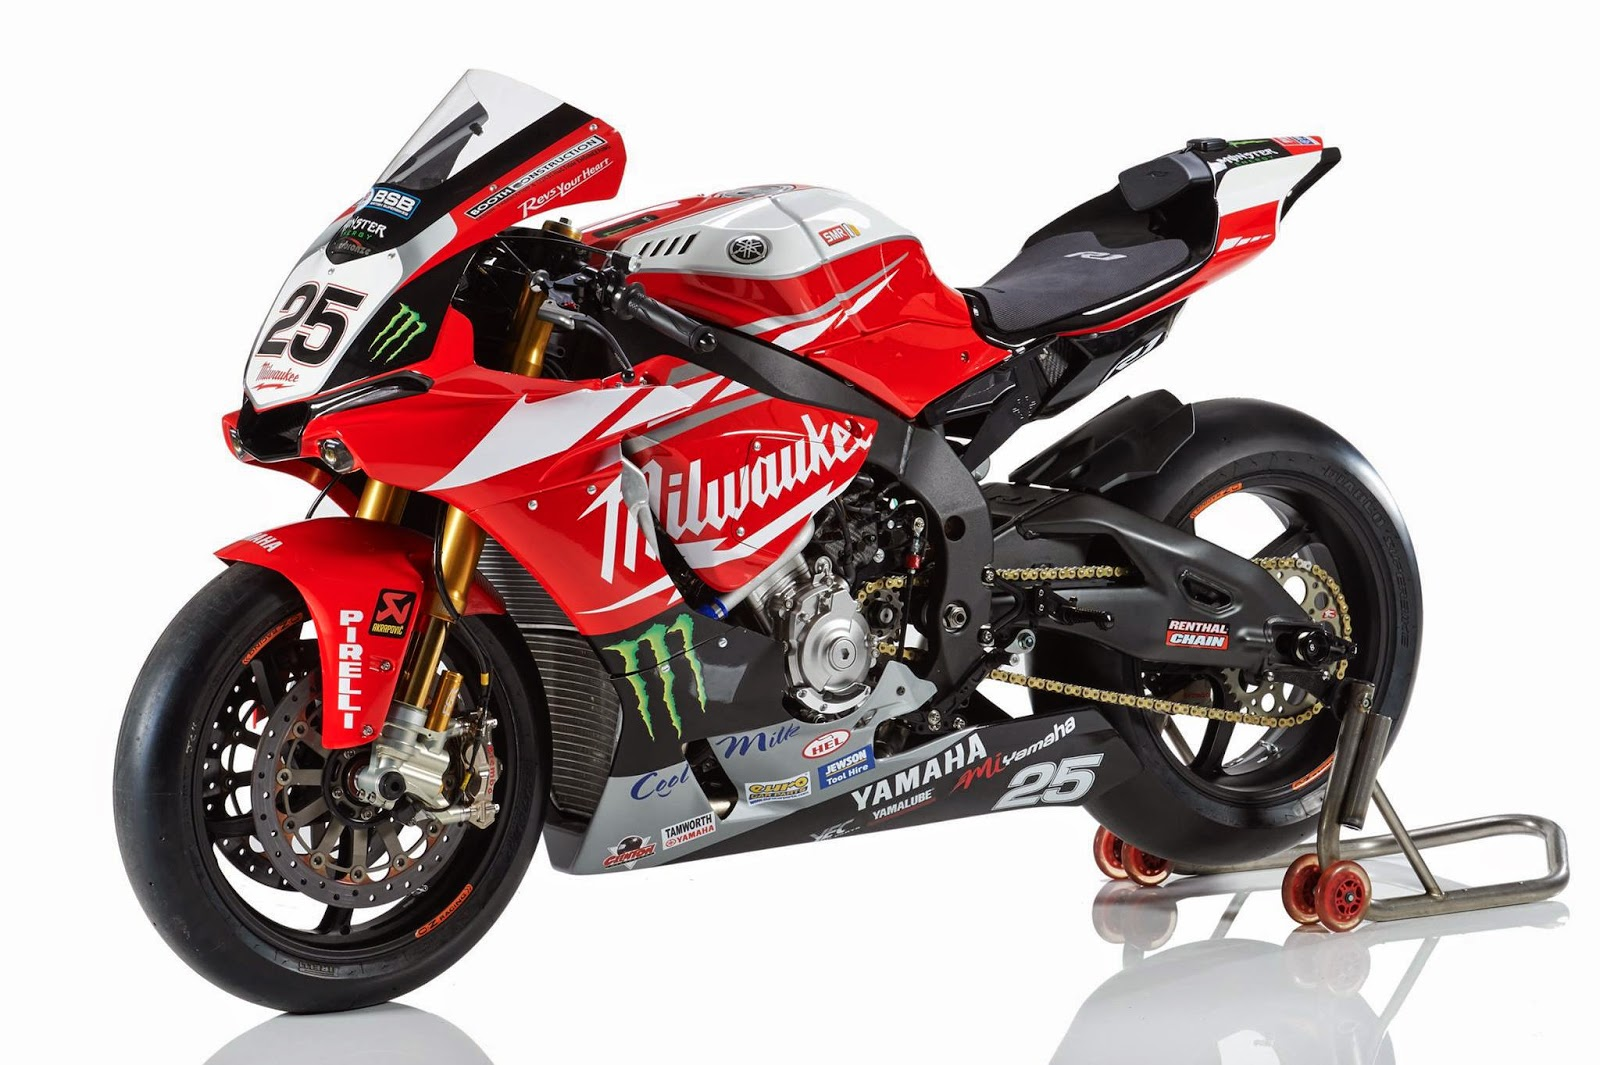 racing caf yamaha yzf r1 bsb team milwaukee yamaha 2015